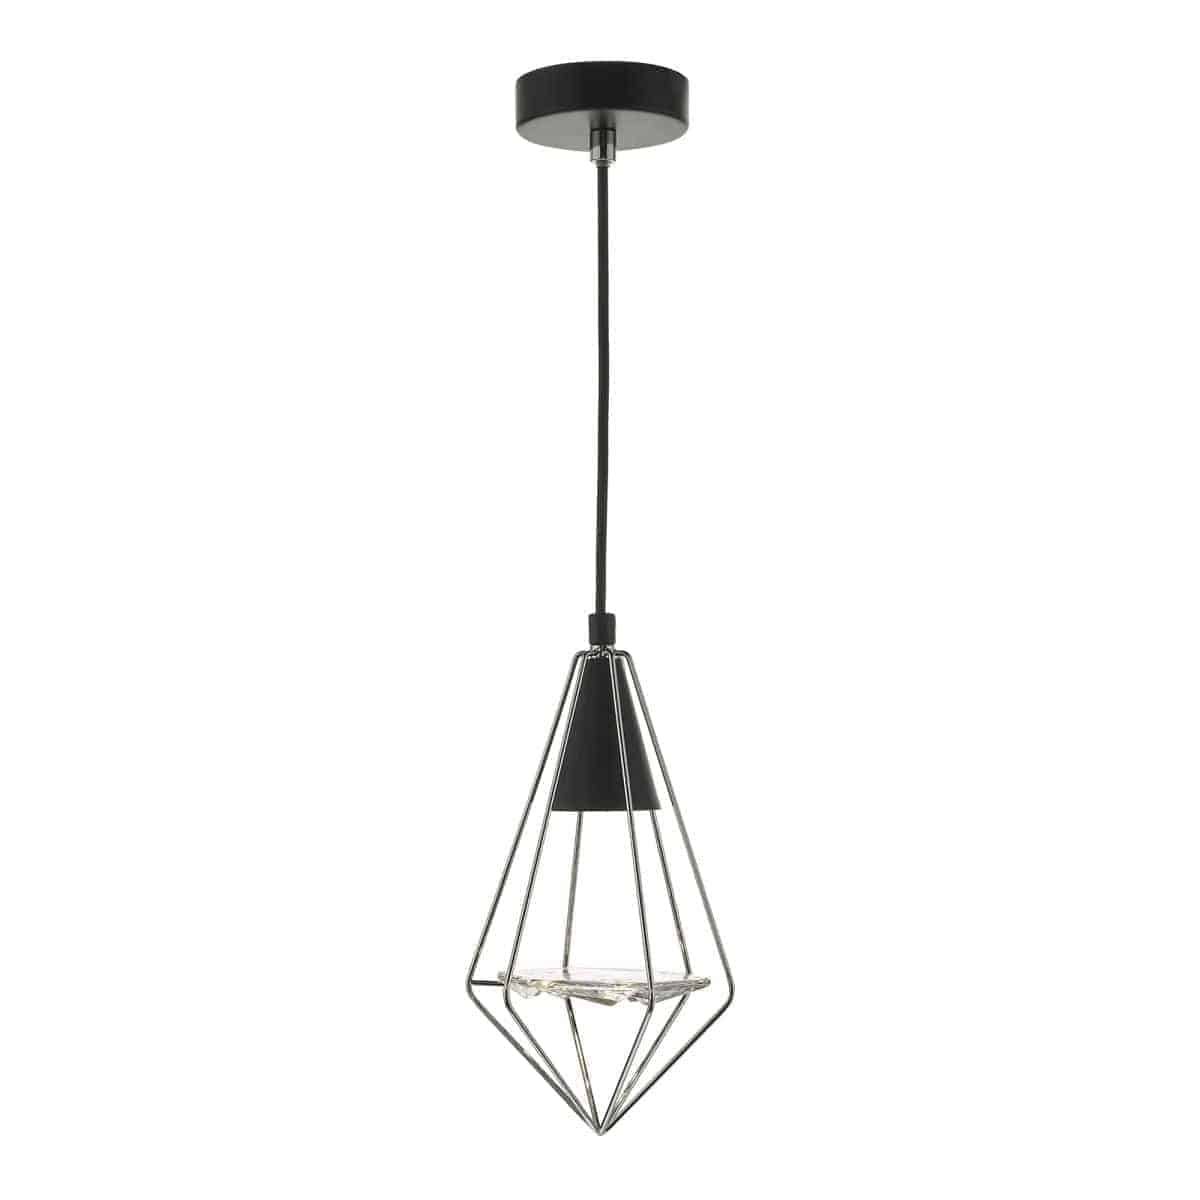 Dar GIA0150 Gianni 1 Light Pendant Black, Polished Chrome & Glass